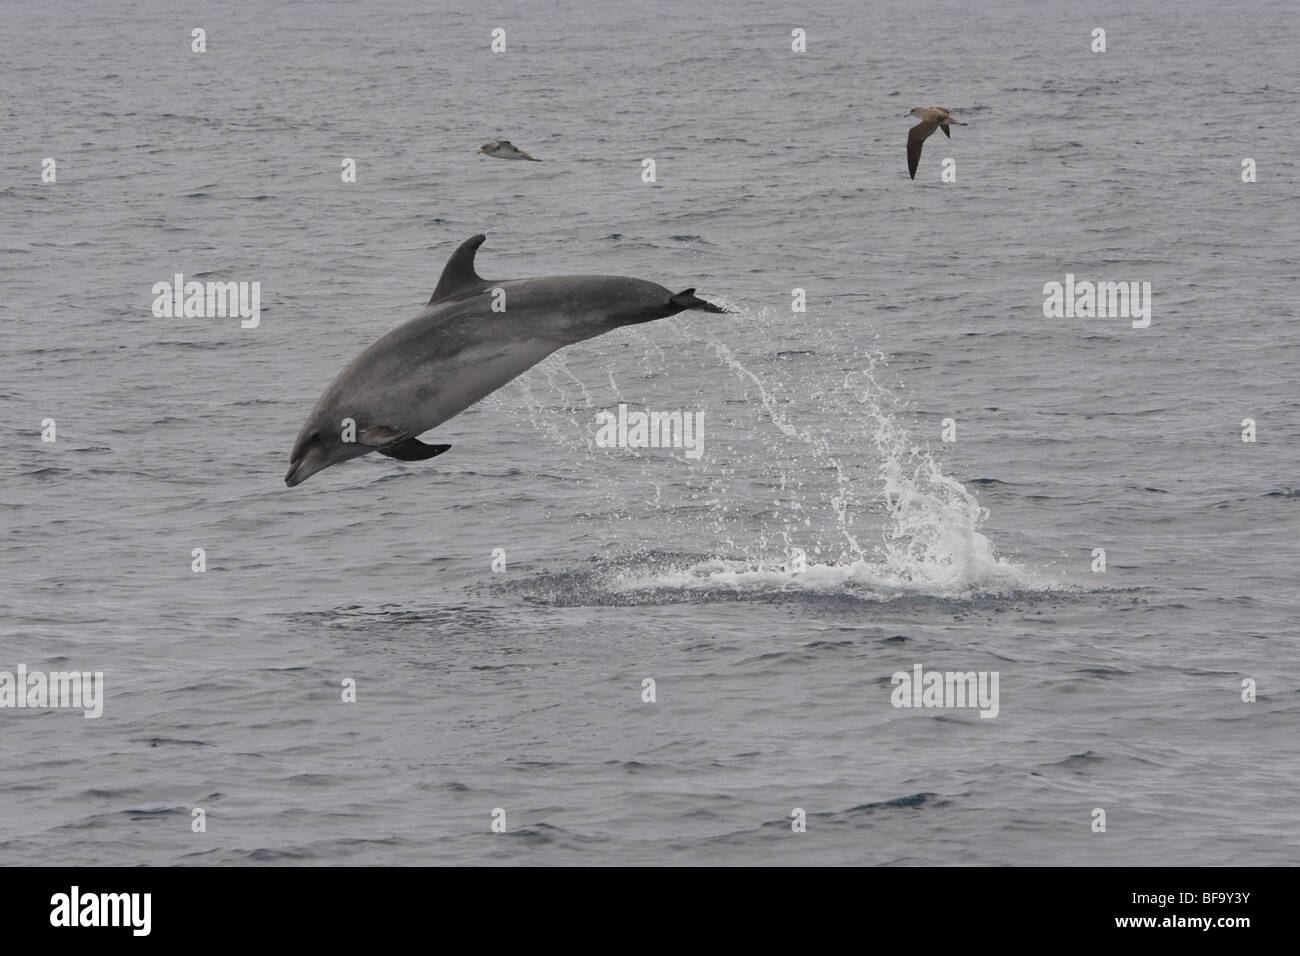 Common Bottlenose Dolphin, Tursiops truncatus, breaching high in the air, off Faial Island, Azores, Atlantic Ocean. - Stock Image